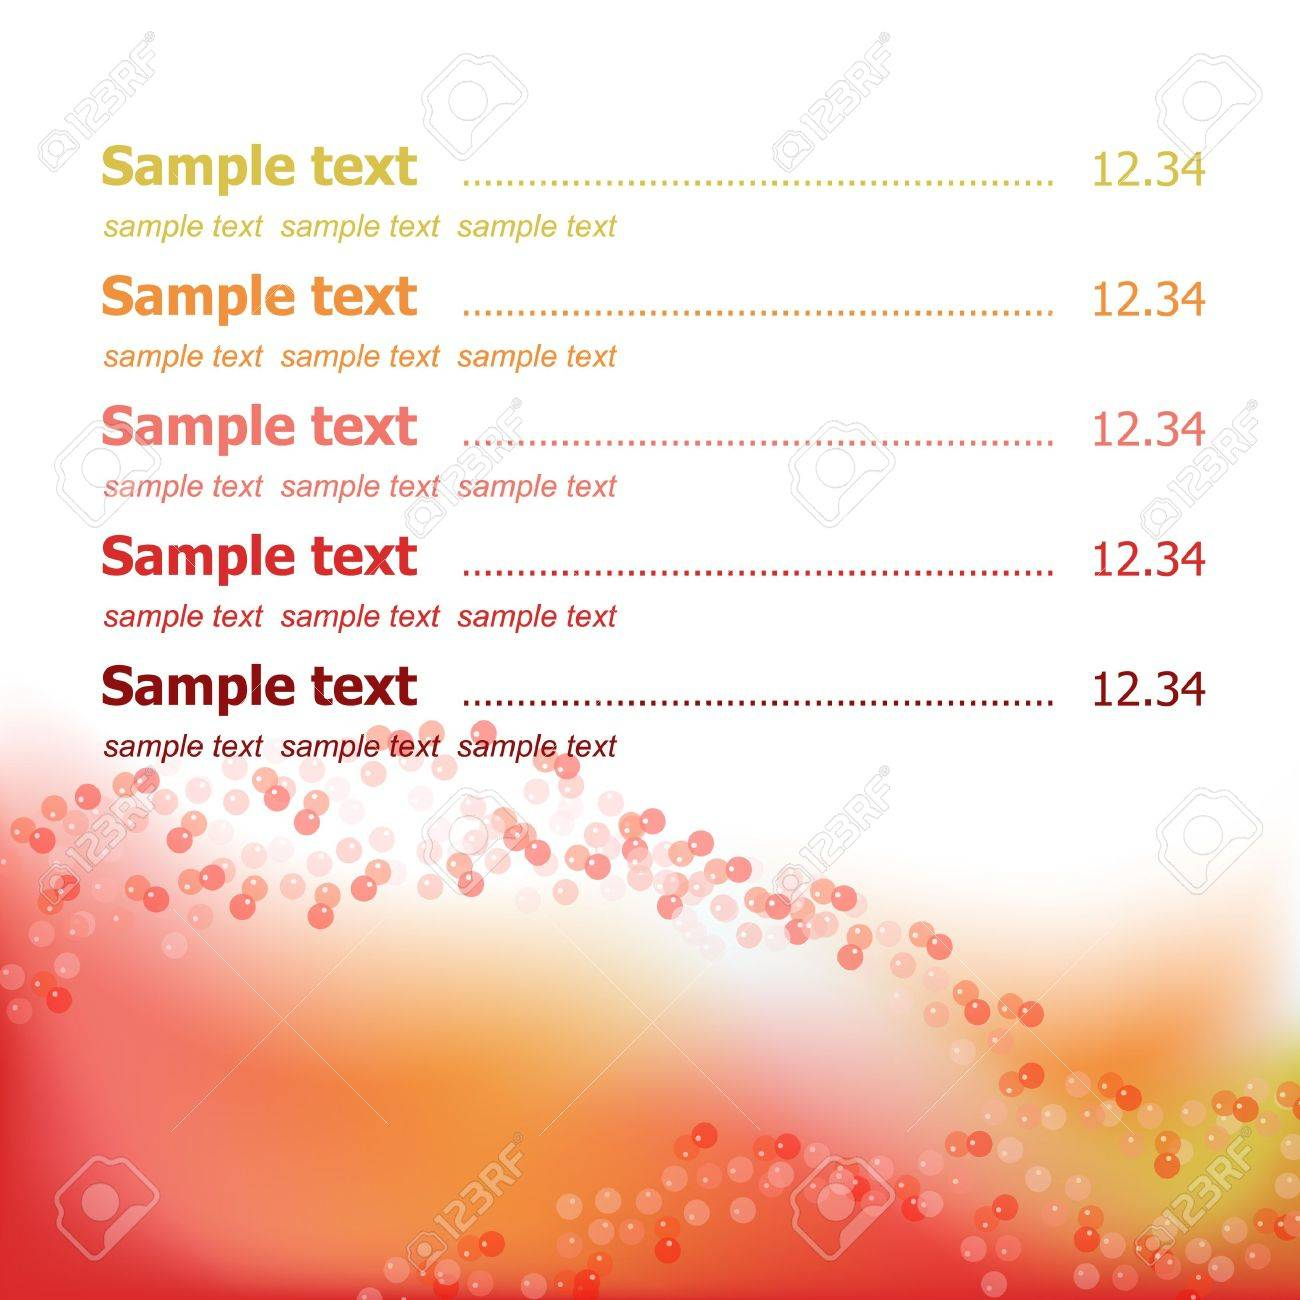 Abstract sweet colors background Stock Photo - 6799746